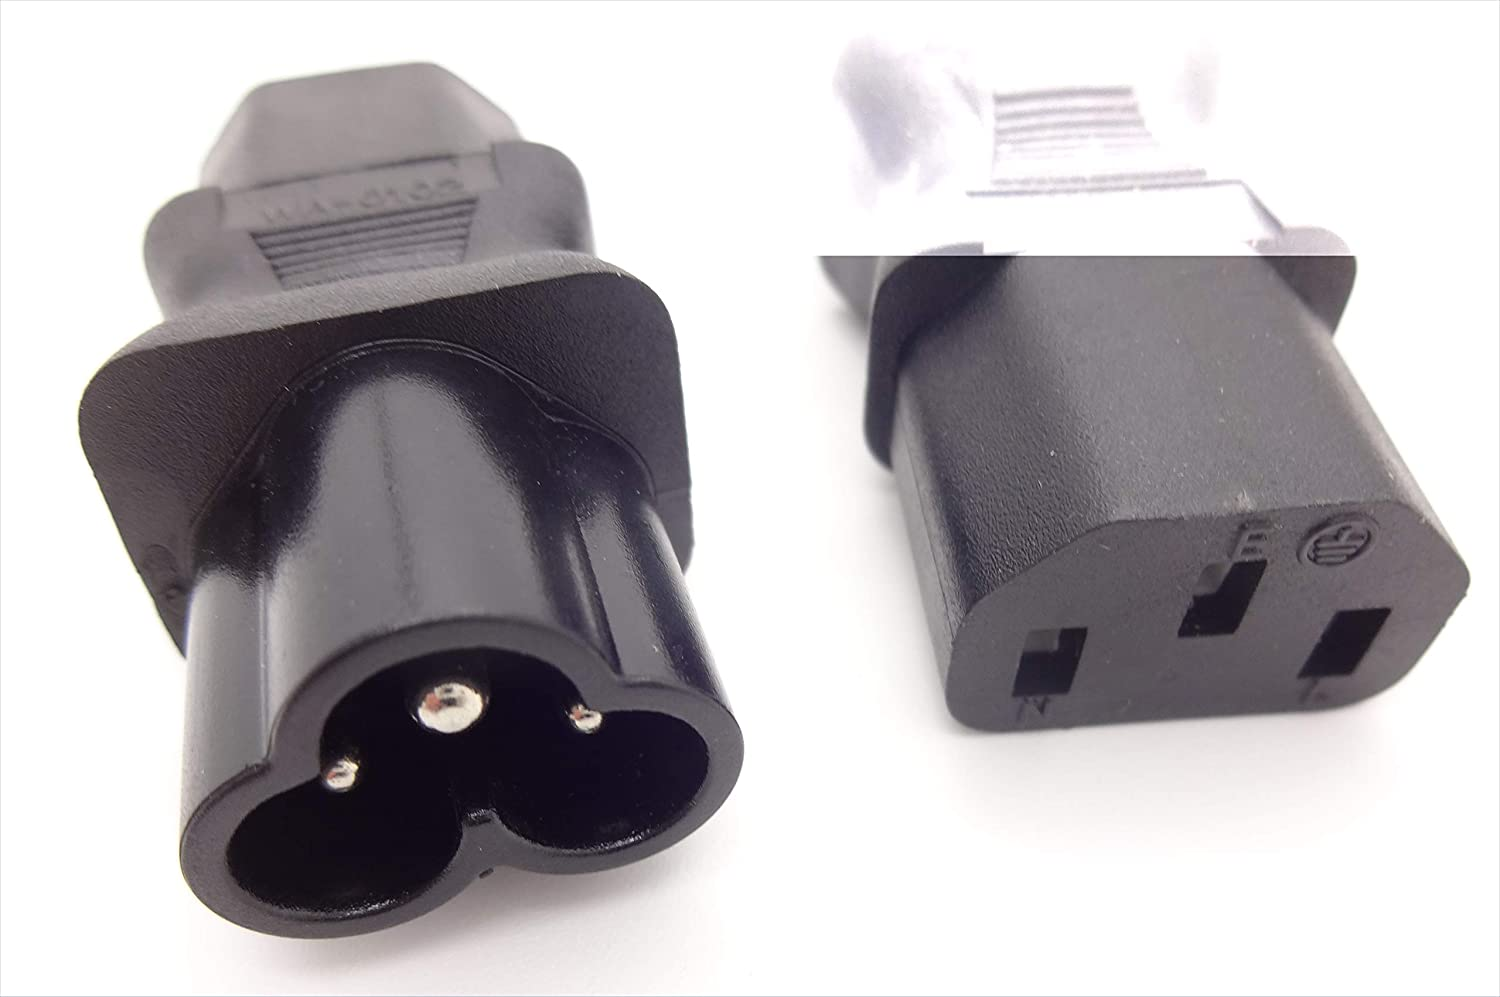 Cablecc IEC 320 C8 Plug to C5 Receptacle Cloverleaf Power Supply Mains Adapter Convertor